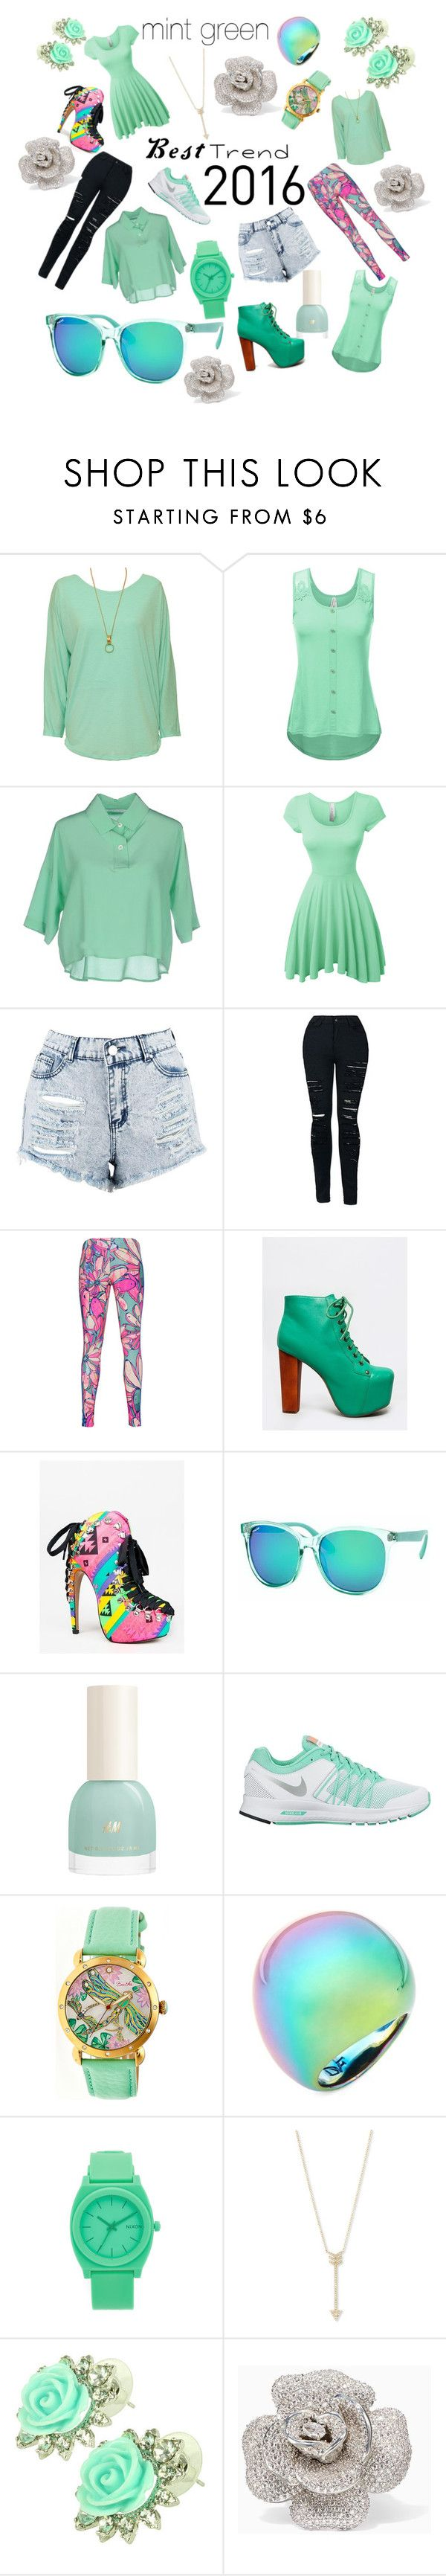 """mint green"" by katondrac ❤ liked on Polyvore featuring WearAll, Lucio Vanotti, LE3NO, Boohoo, adidas Originals, Jeffrey Campbell, Red Kiss, Polar, NIKE and Diane Von Furstenberg"